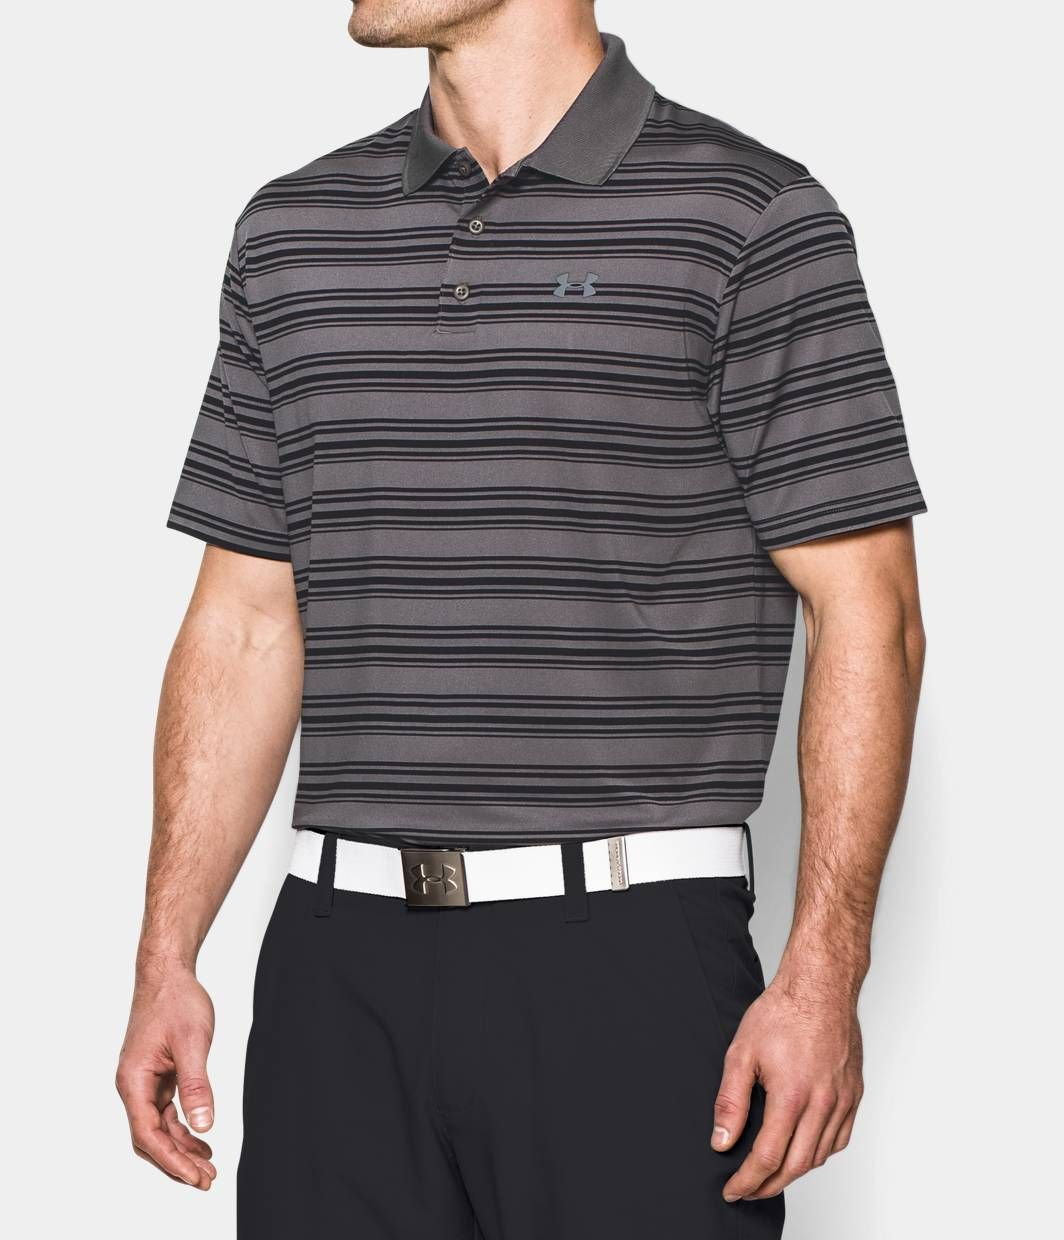 71453e6de5 Men's UA Clubhouse Polo | Under Armour US | Under Armour Portfolio ...